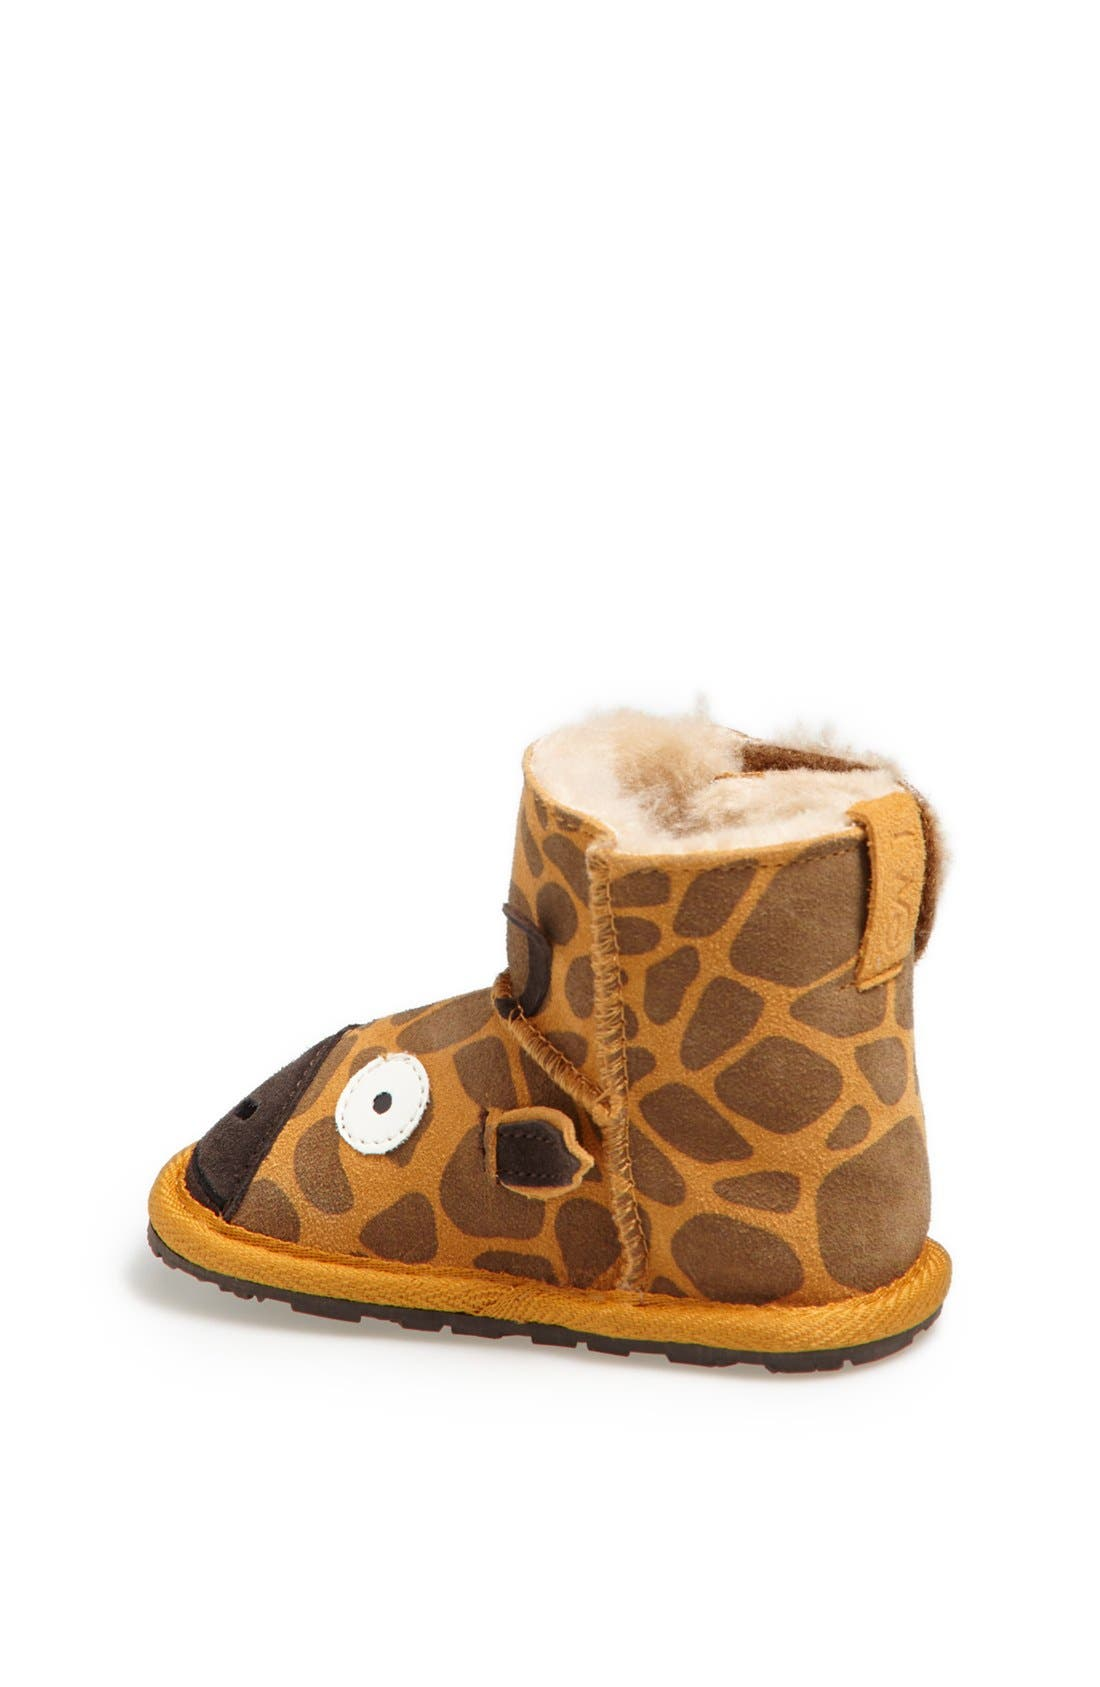 Alternate Image 2  - EMU Australia 'Little Creatures - Giraffe' Boot (Baby & Walker)